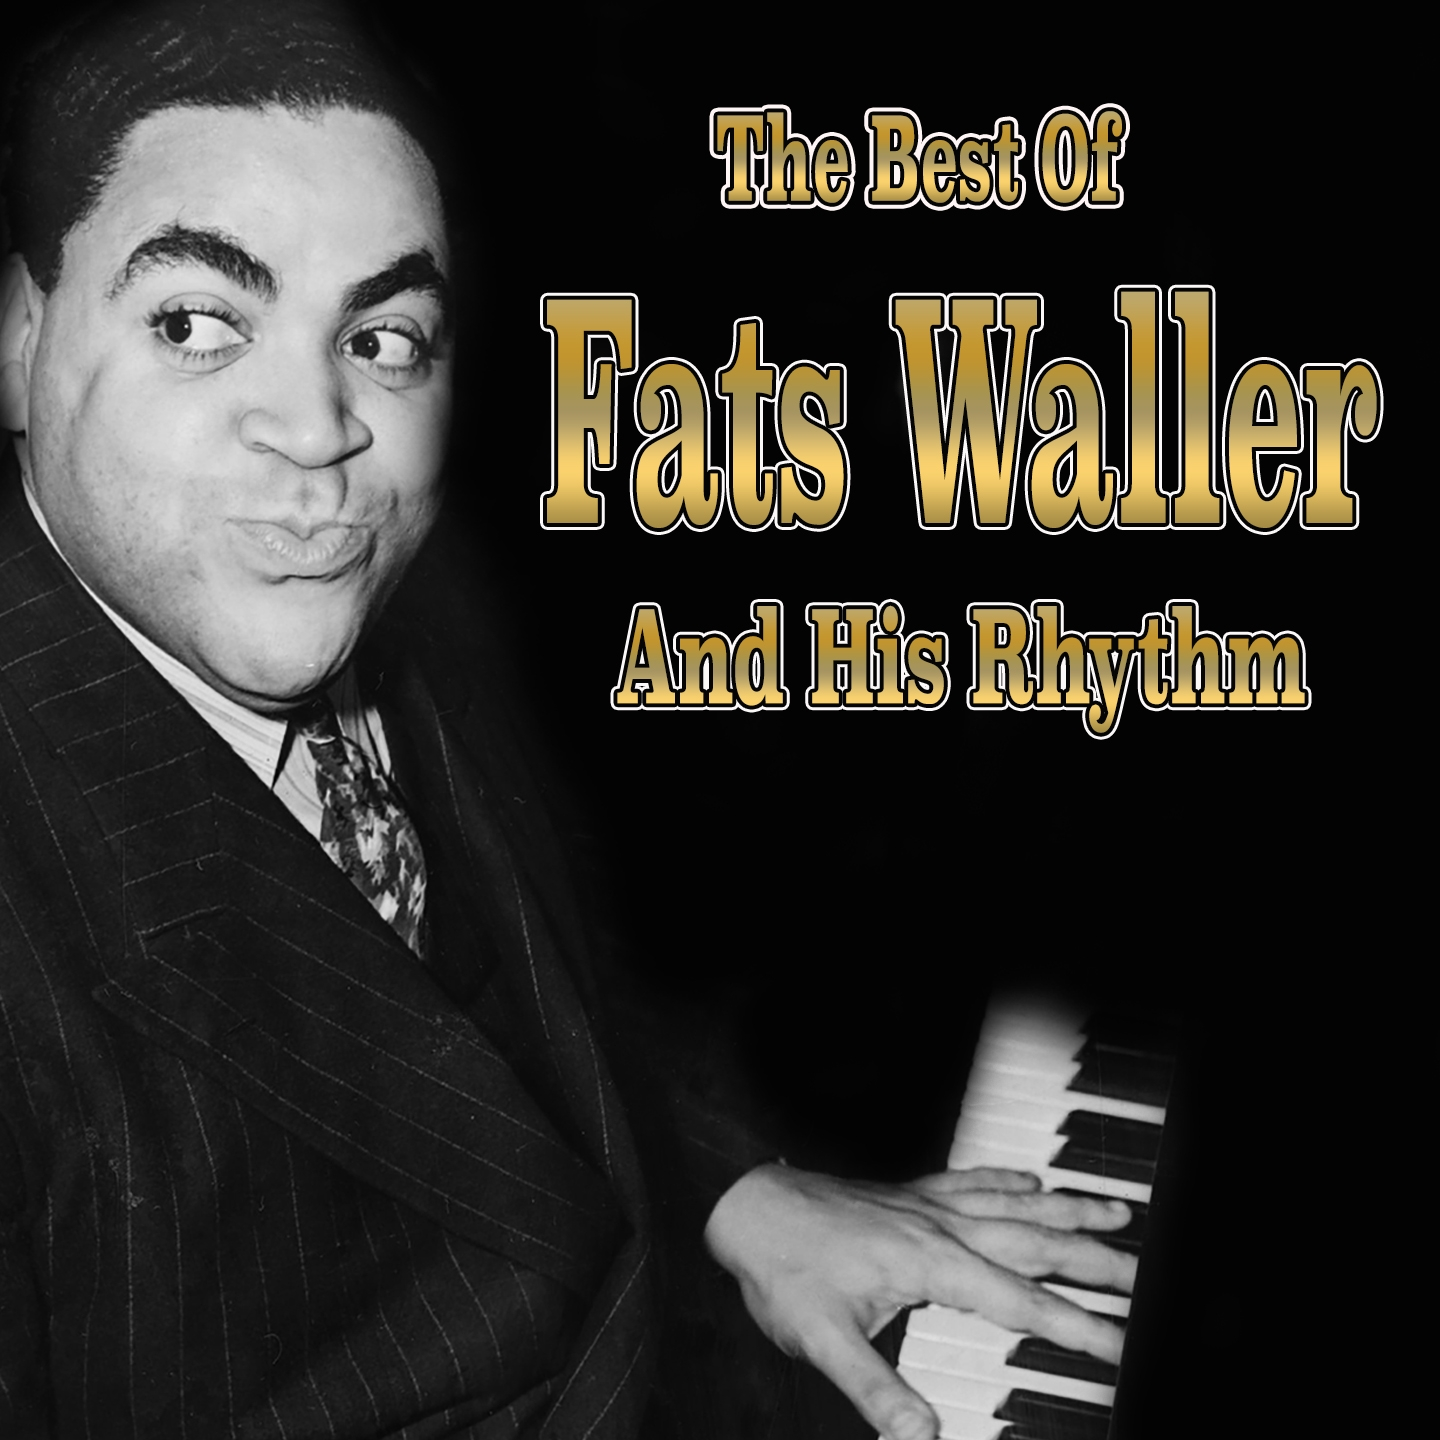 The Best of Fats Waller